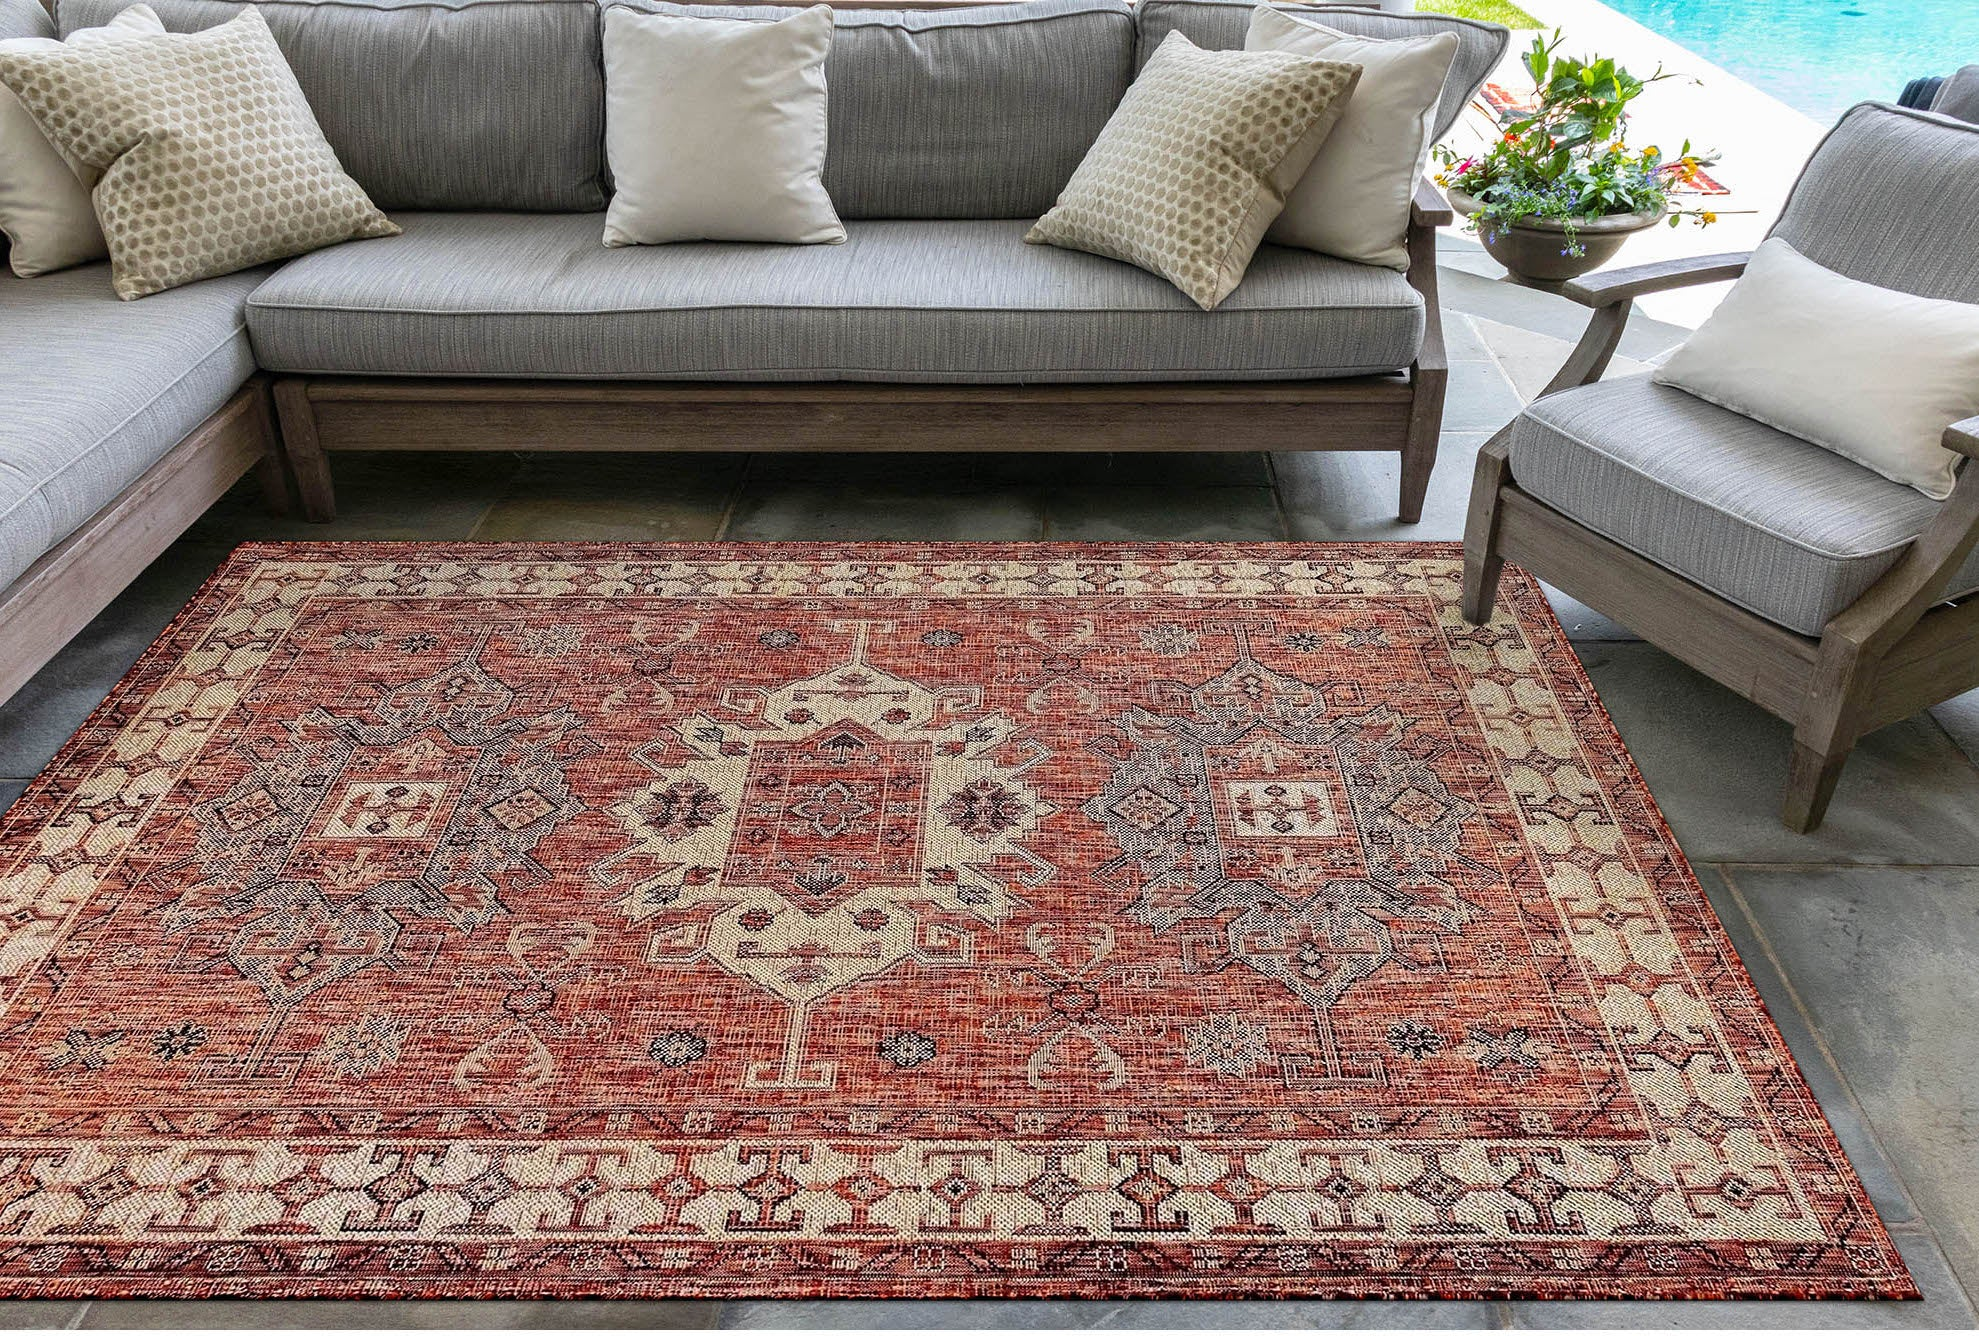 Caring for your Outdoor Rug